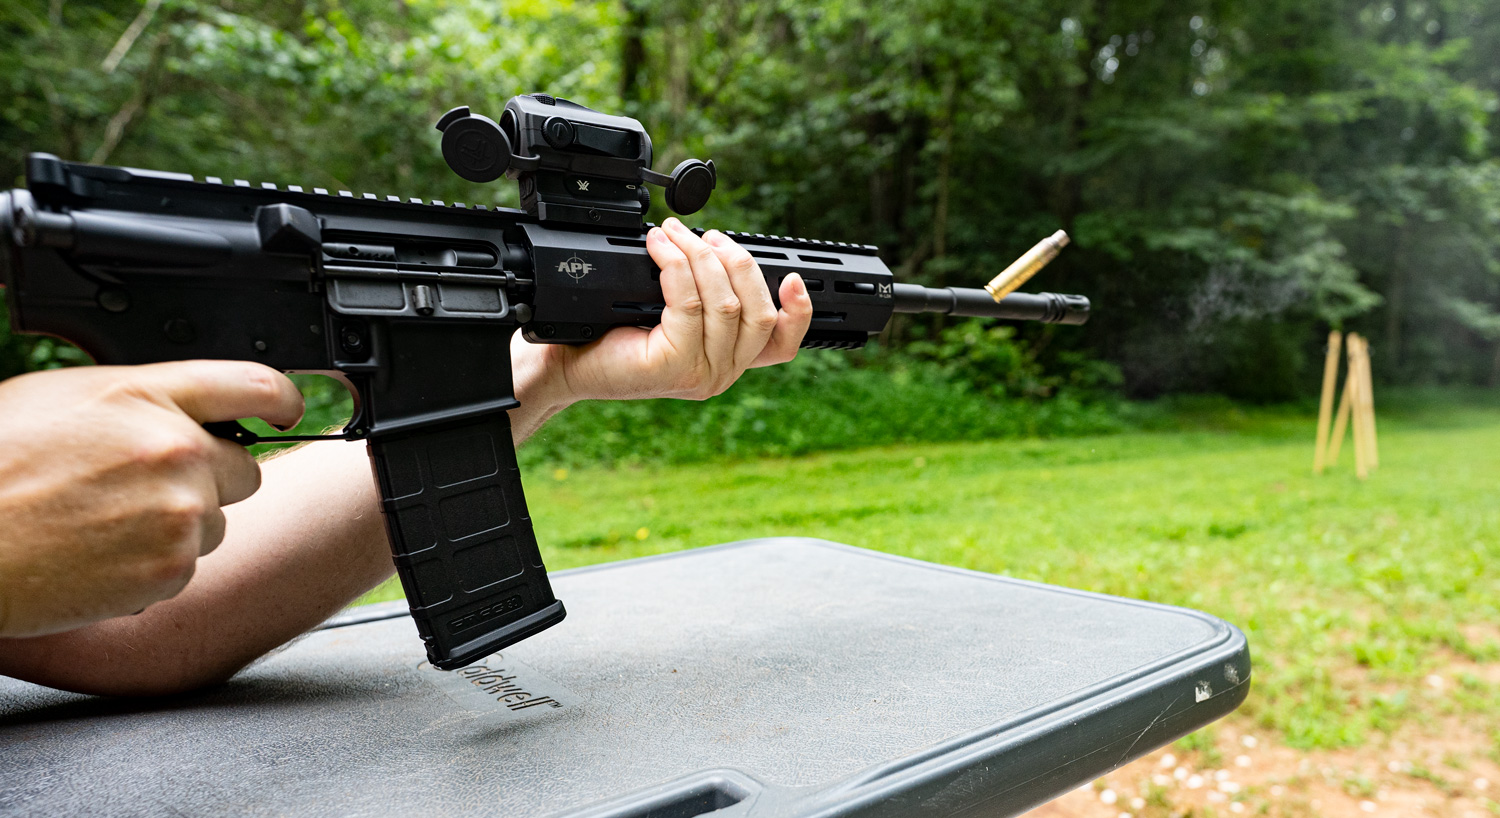 Shooting an AR-15 at the range